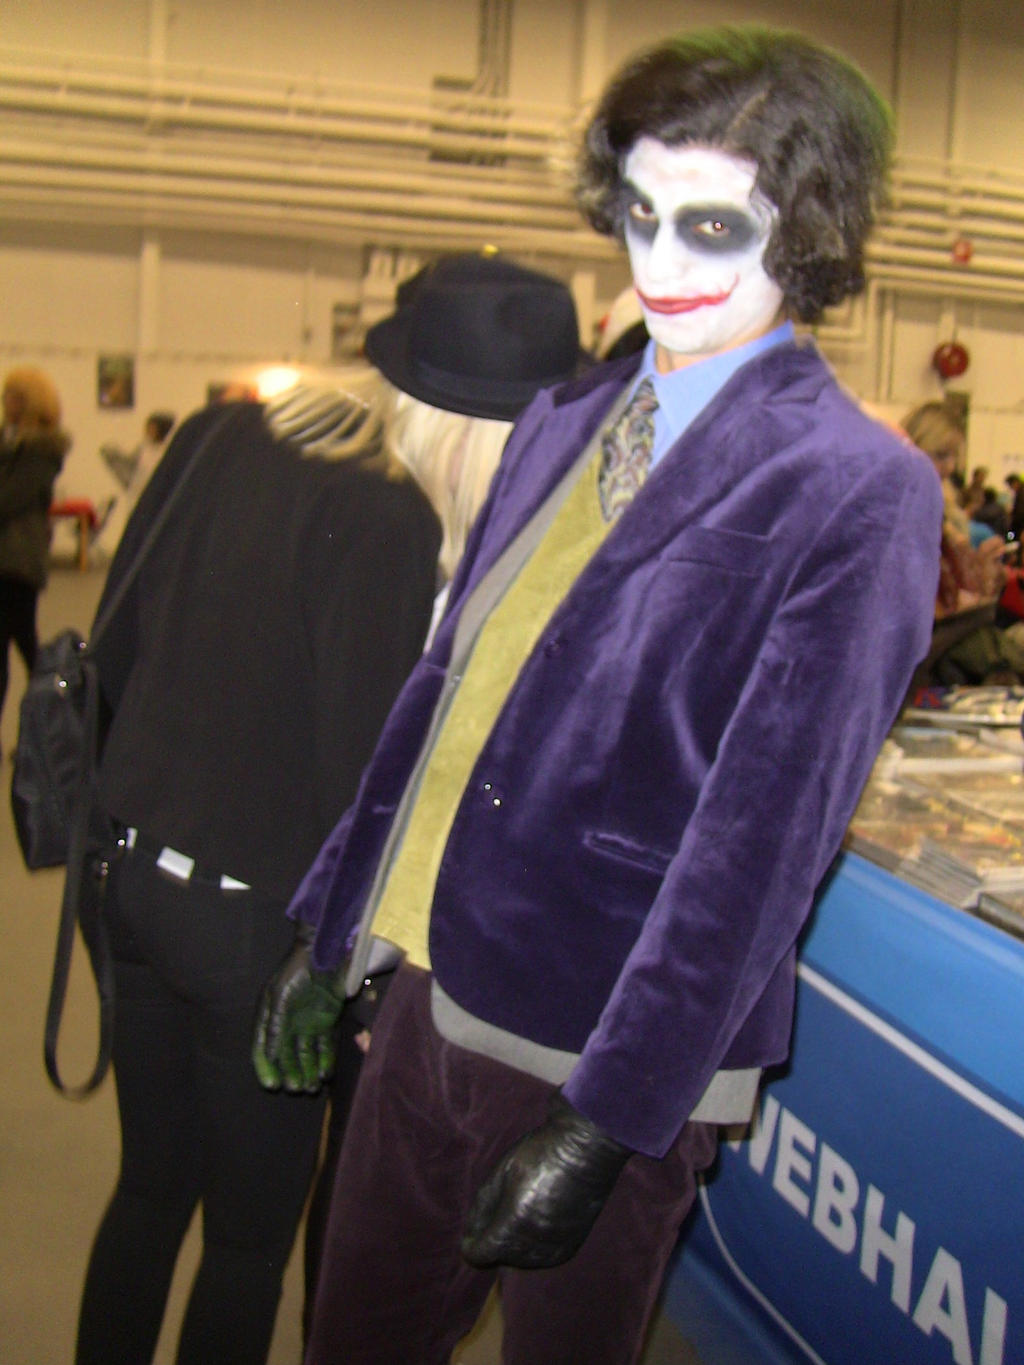 The Joker cosplay (The Dark Knight) by EgonEagle